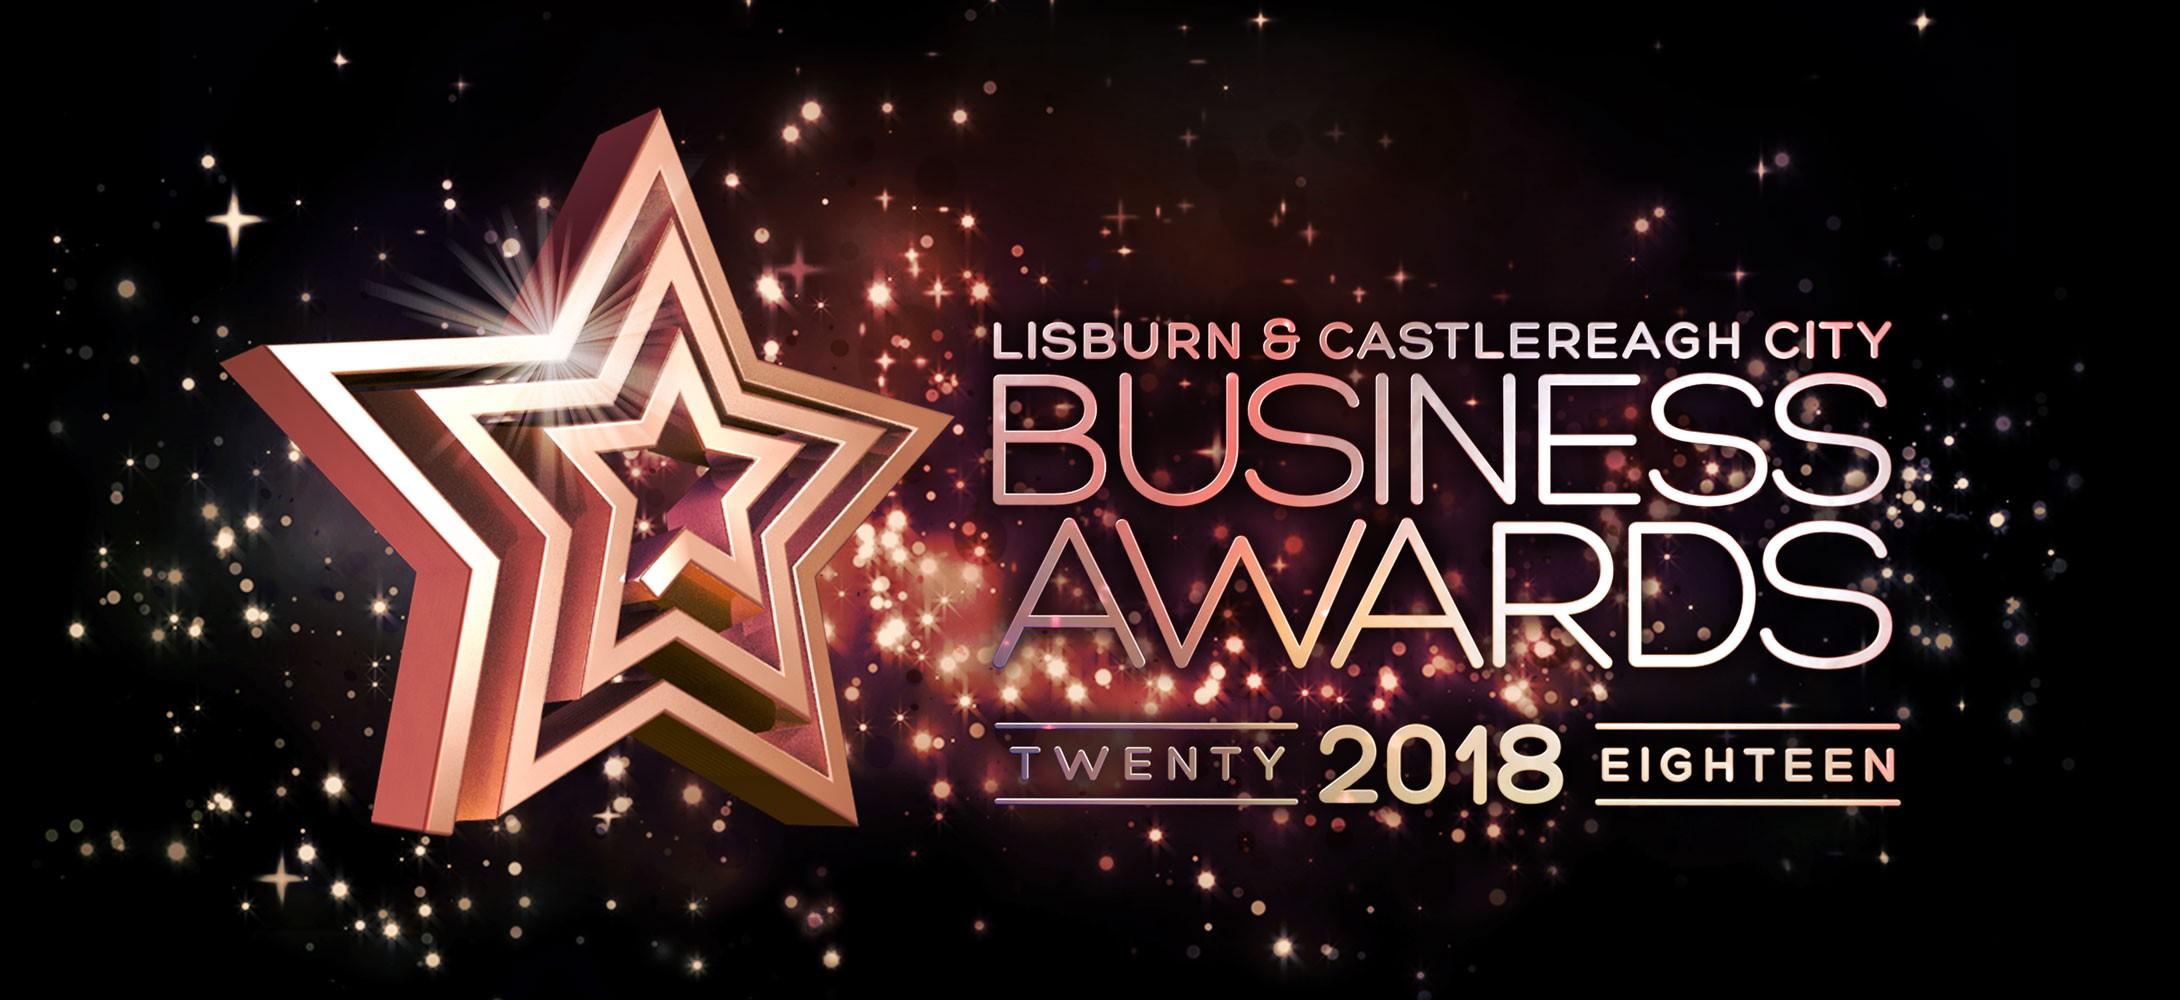 Lisburn & Castlereagh City Business Awards 2018